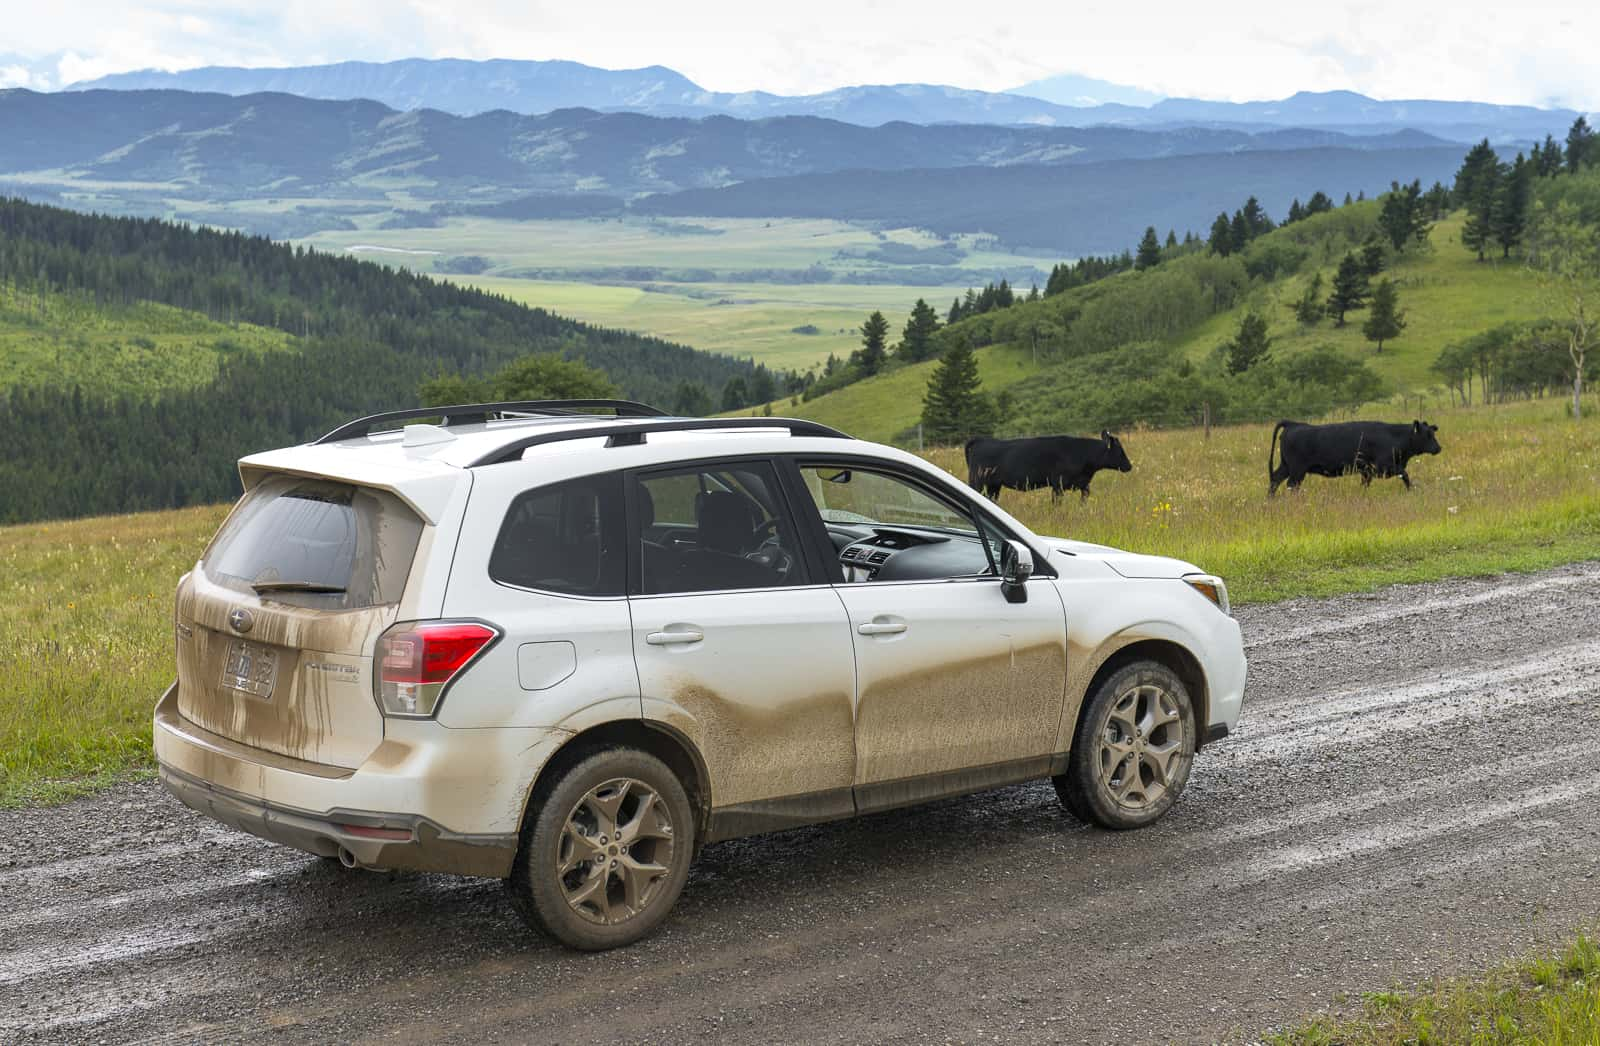 first drive new 2017 subaru forester explores the cowboy trail. Black Bedroom Furniture Sets. Home Design Ideas